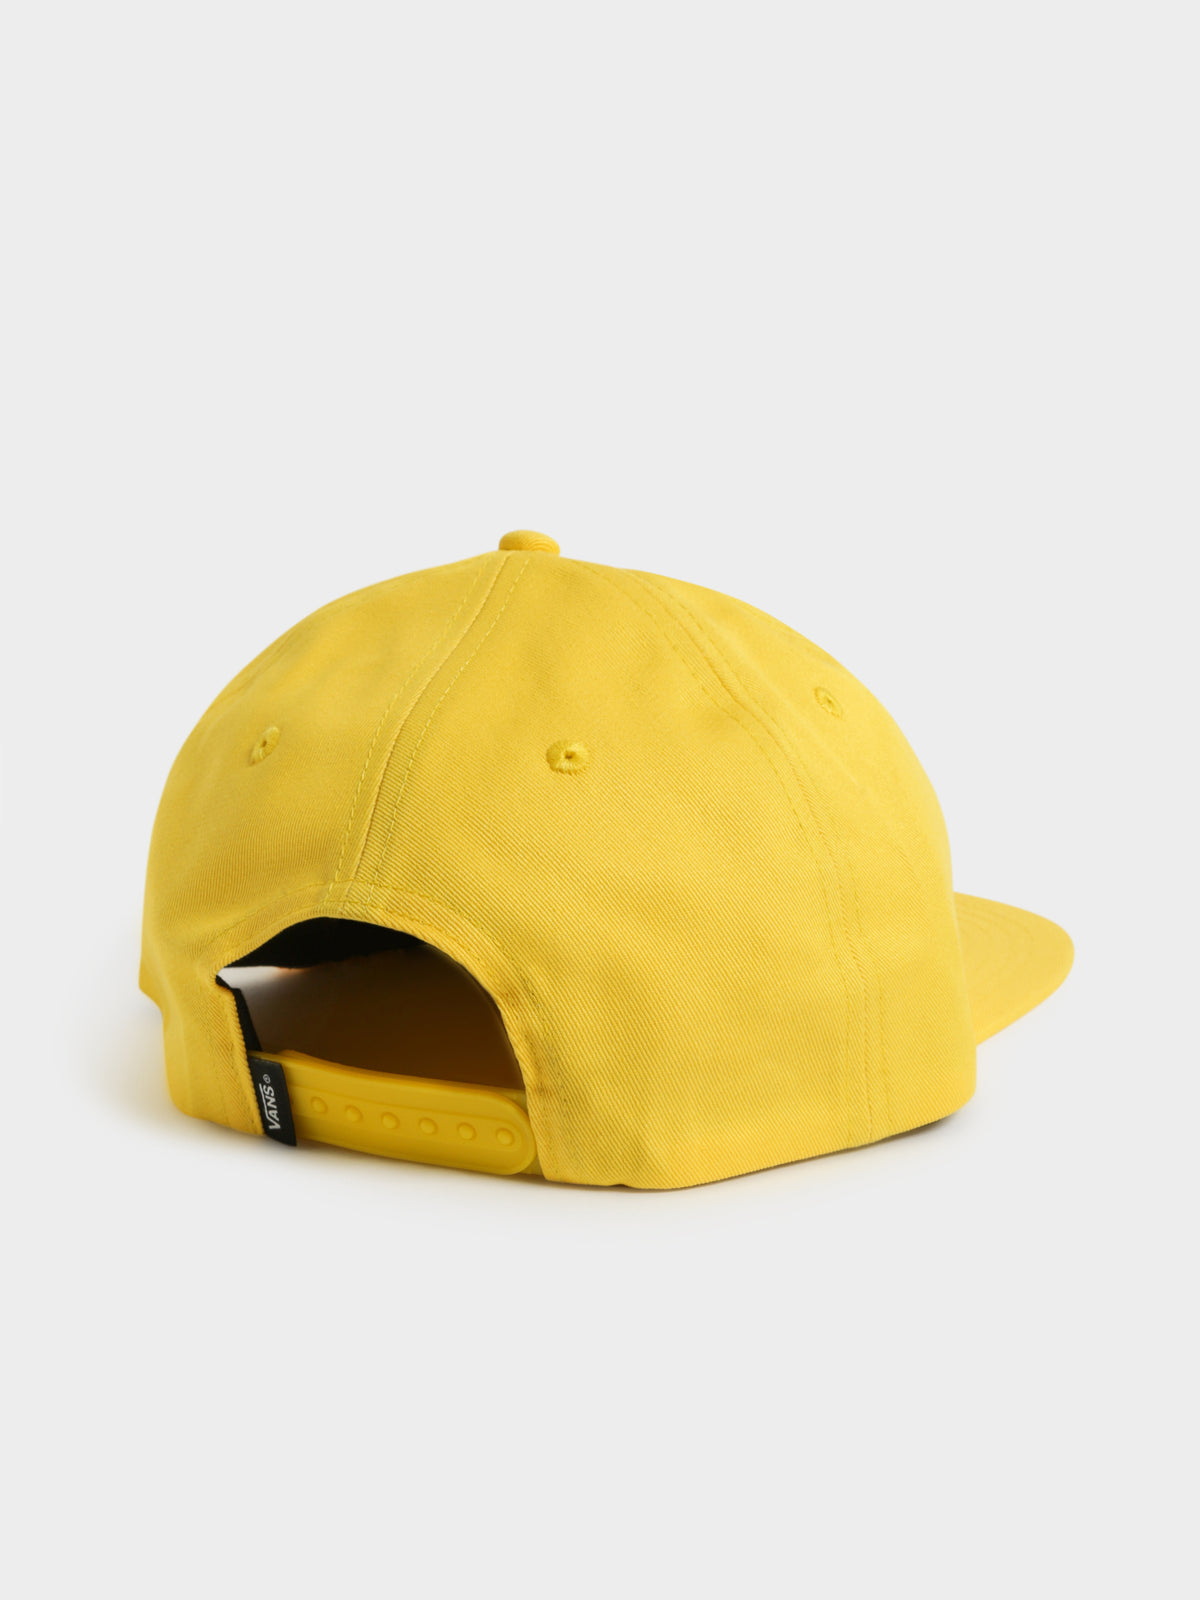 The Simpsons x Vans Krusty Shallow Unconstructed Hat in Yellow